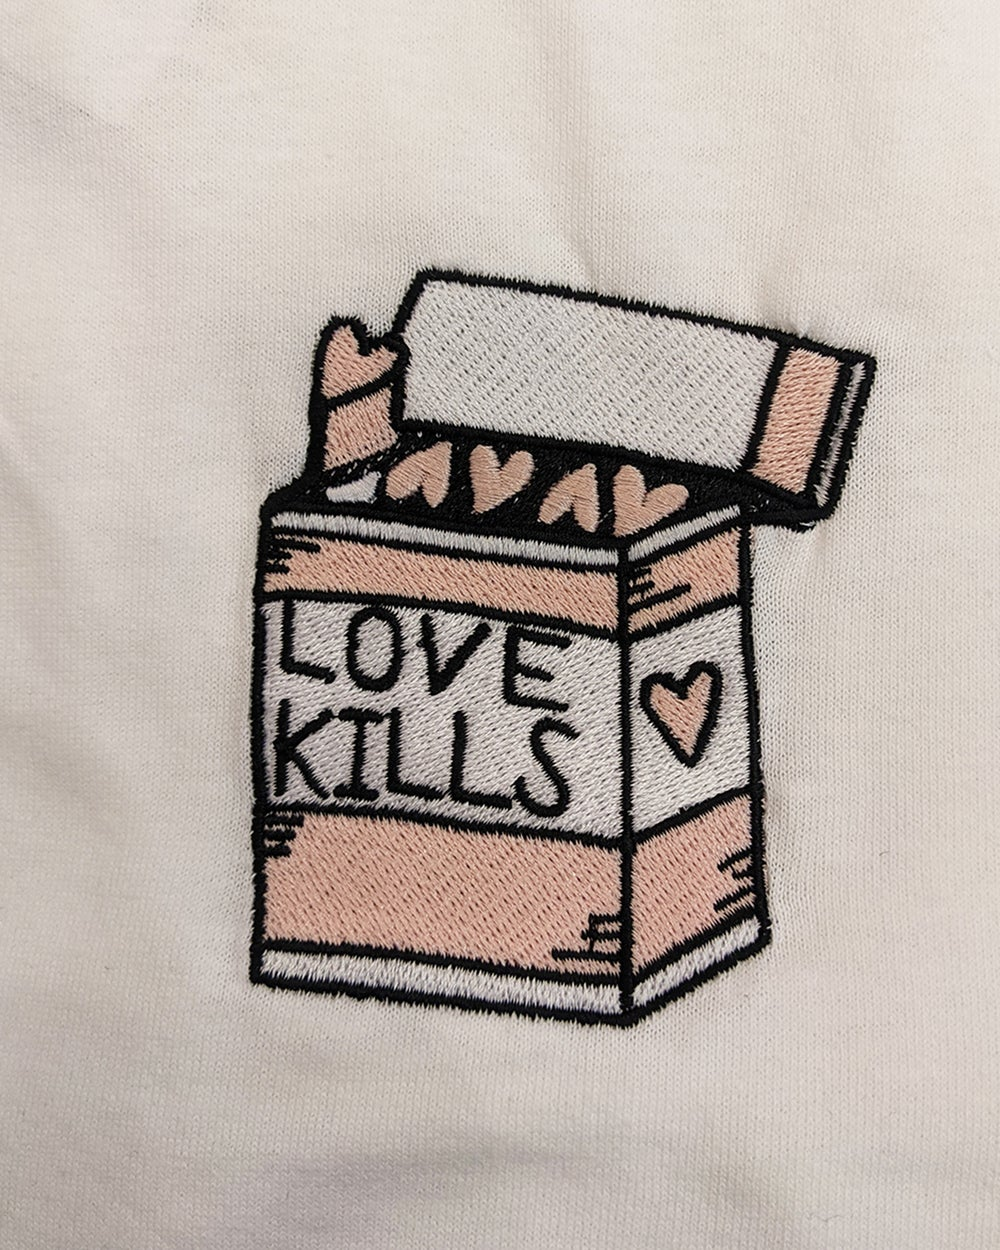 Image of CATCALL 'Love Kills' Embroidered T-Shirt in WHITE